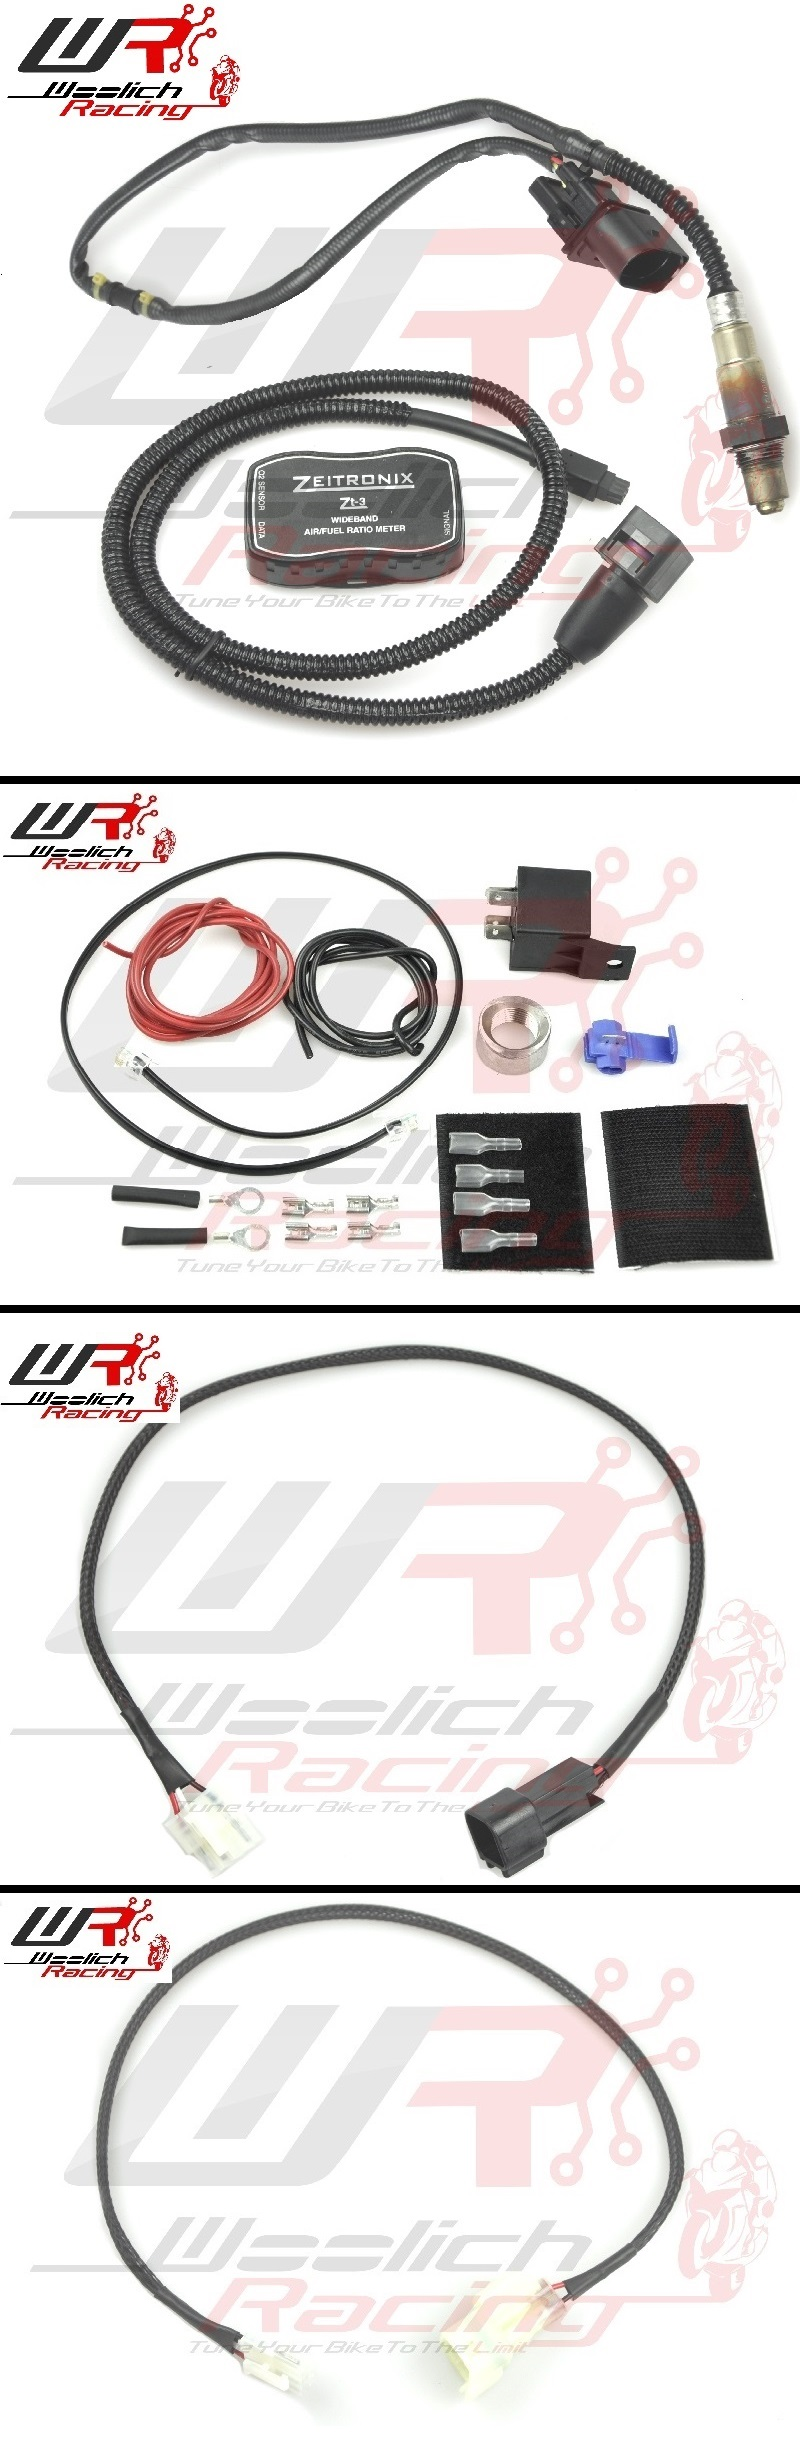 2012-2016 Kawasaki Z800 Log Box (Denso) v3 + Zeitronix ZT-3 Wideband O2 Package